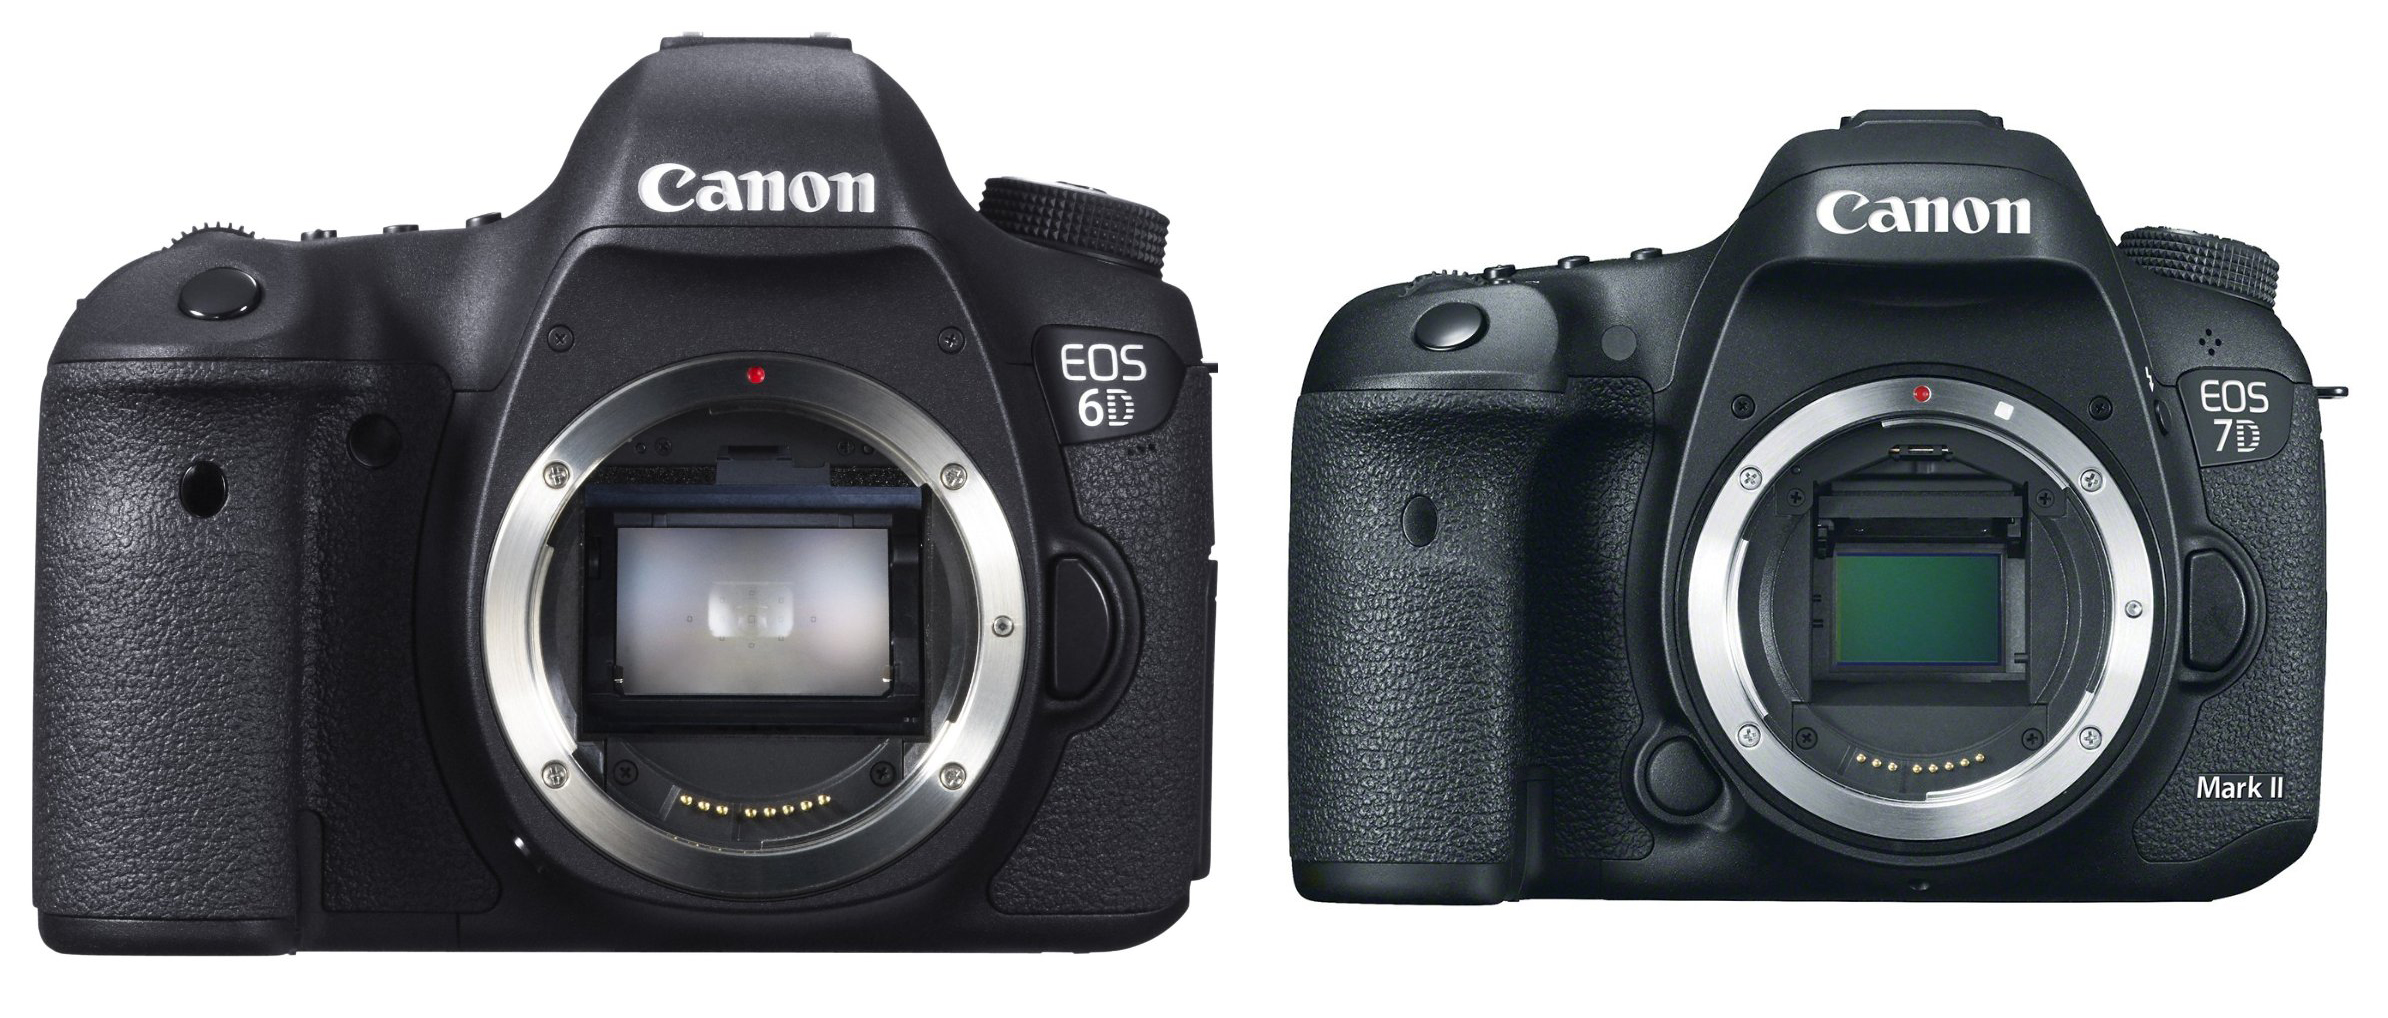 7D-mark-II-and-6D